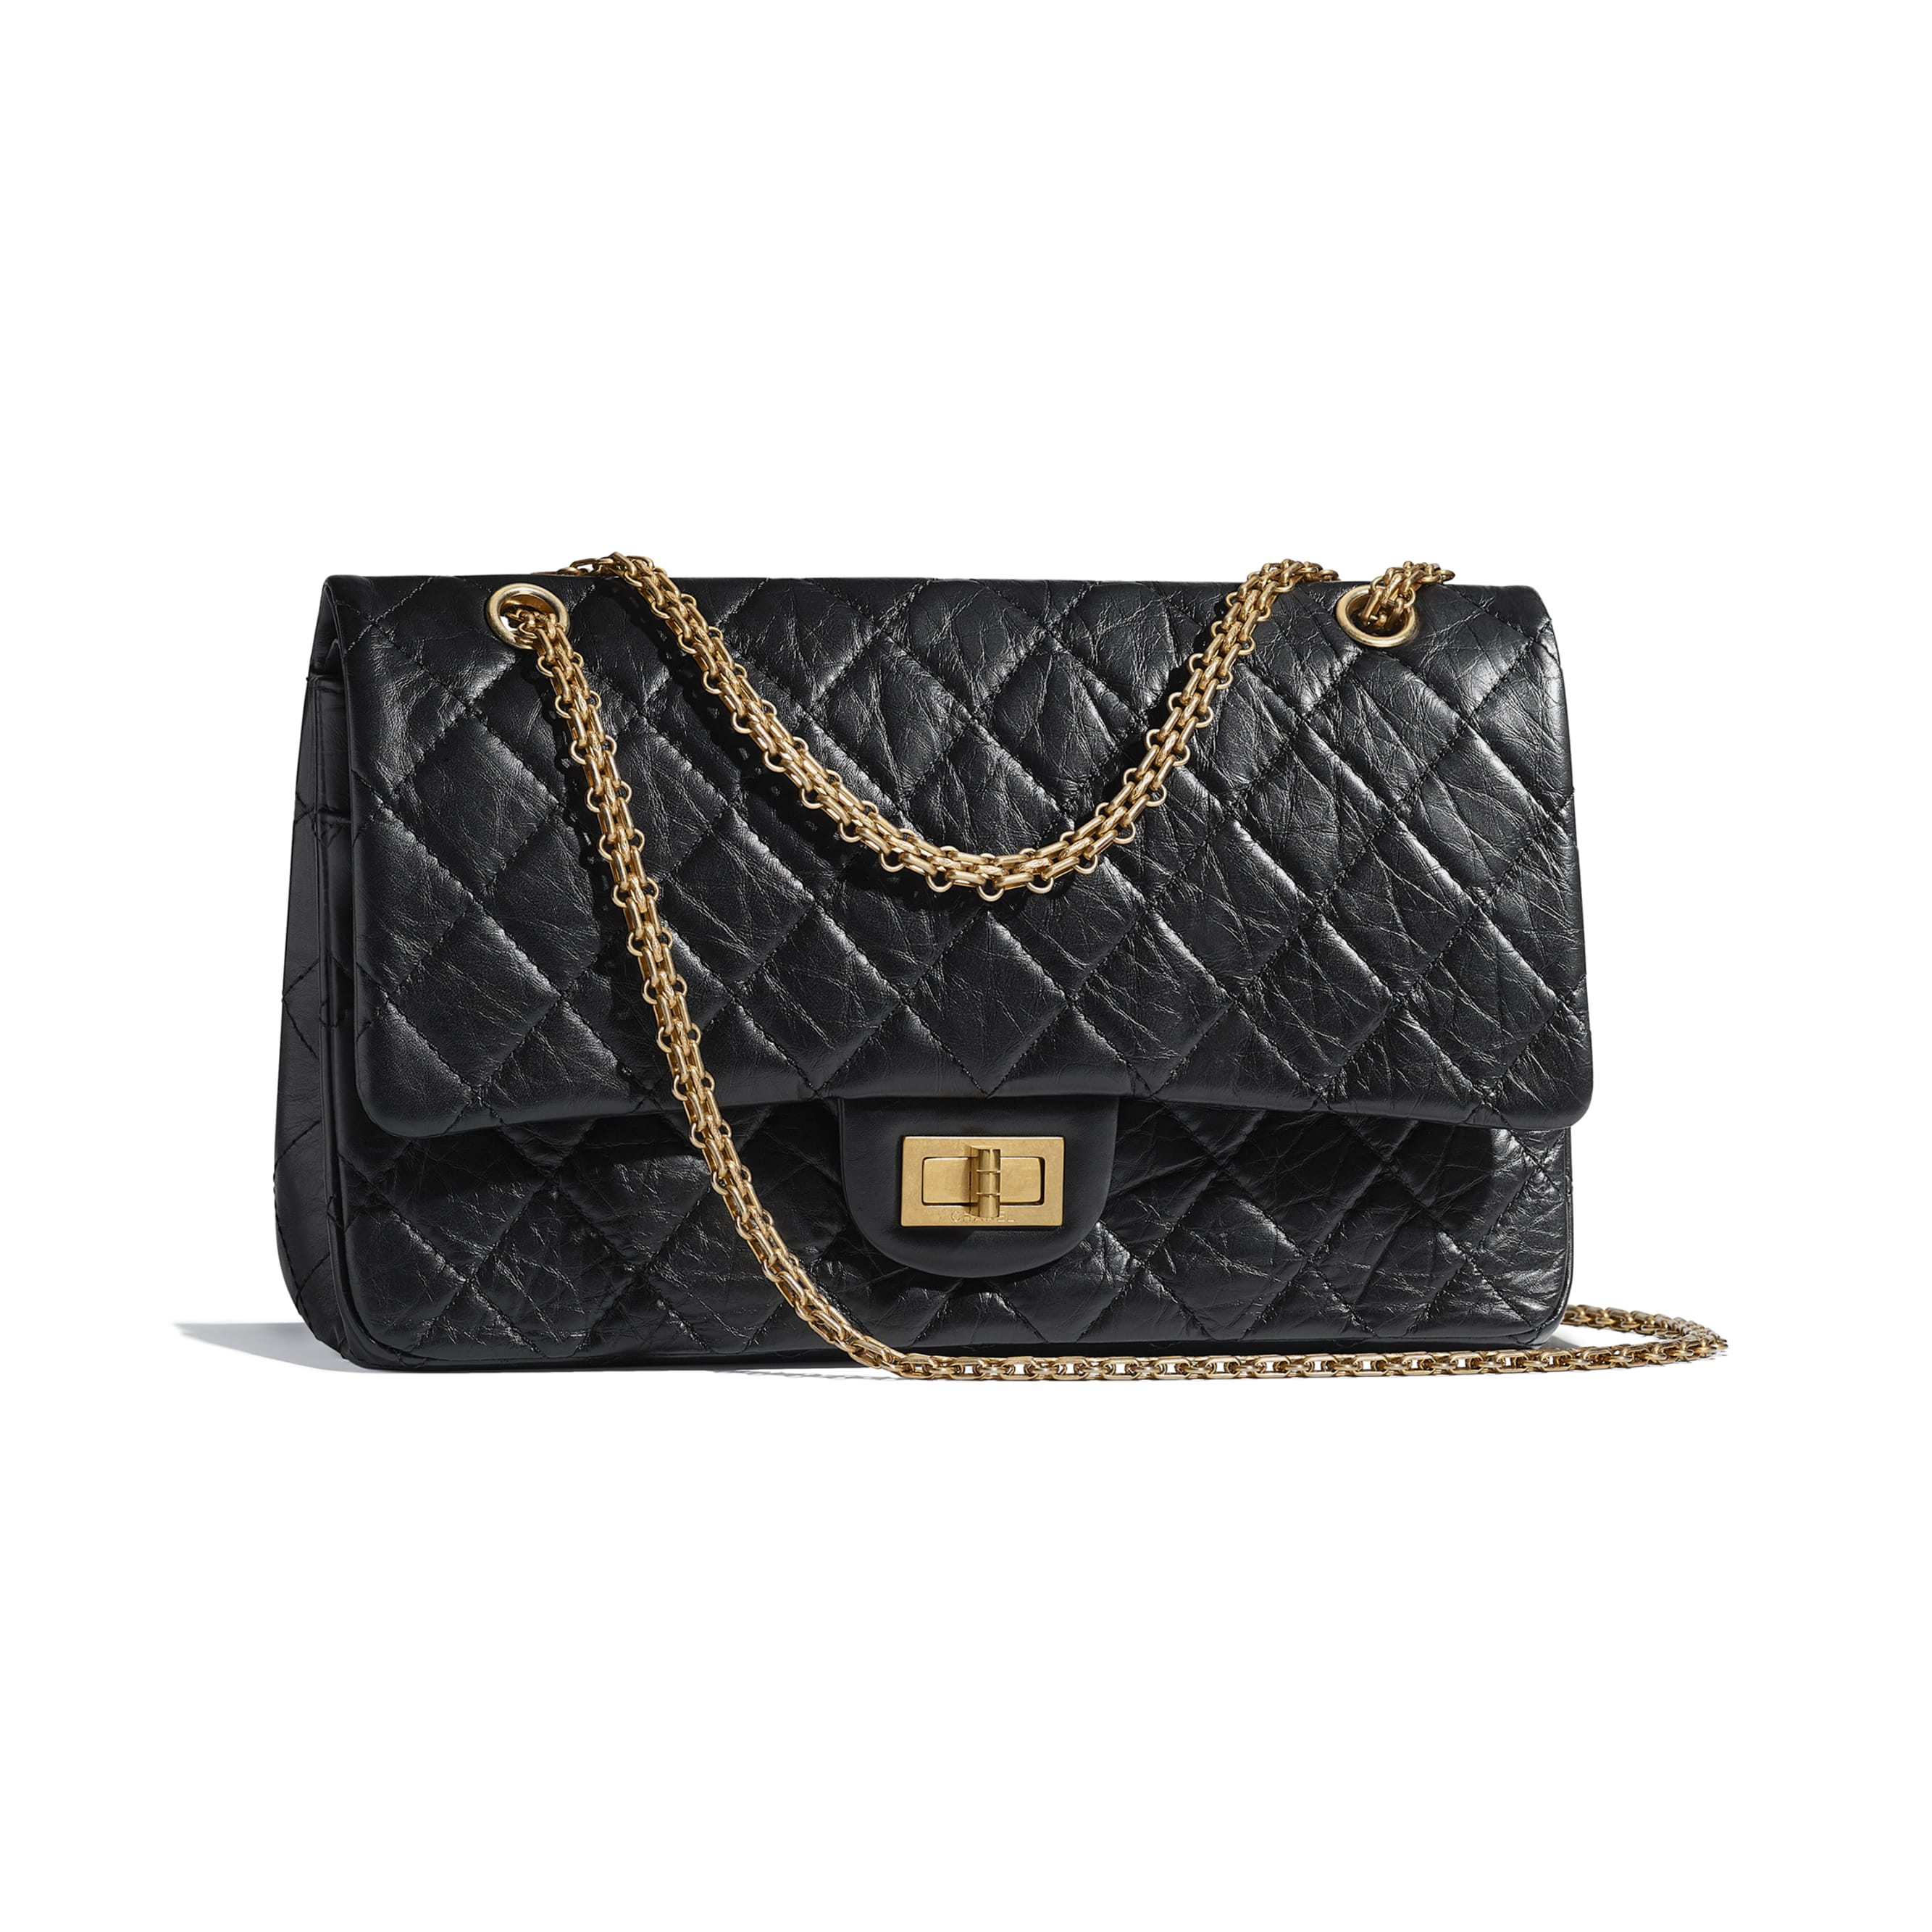 Maxi 2.55 Handbag - Black - Aged Calfskin & Gold-Tone Metal - CHANEL - Other view - see standard sized version